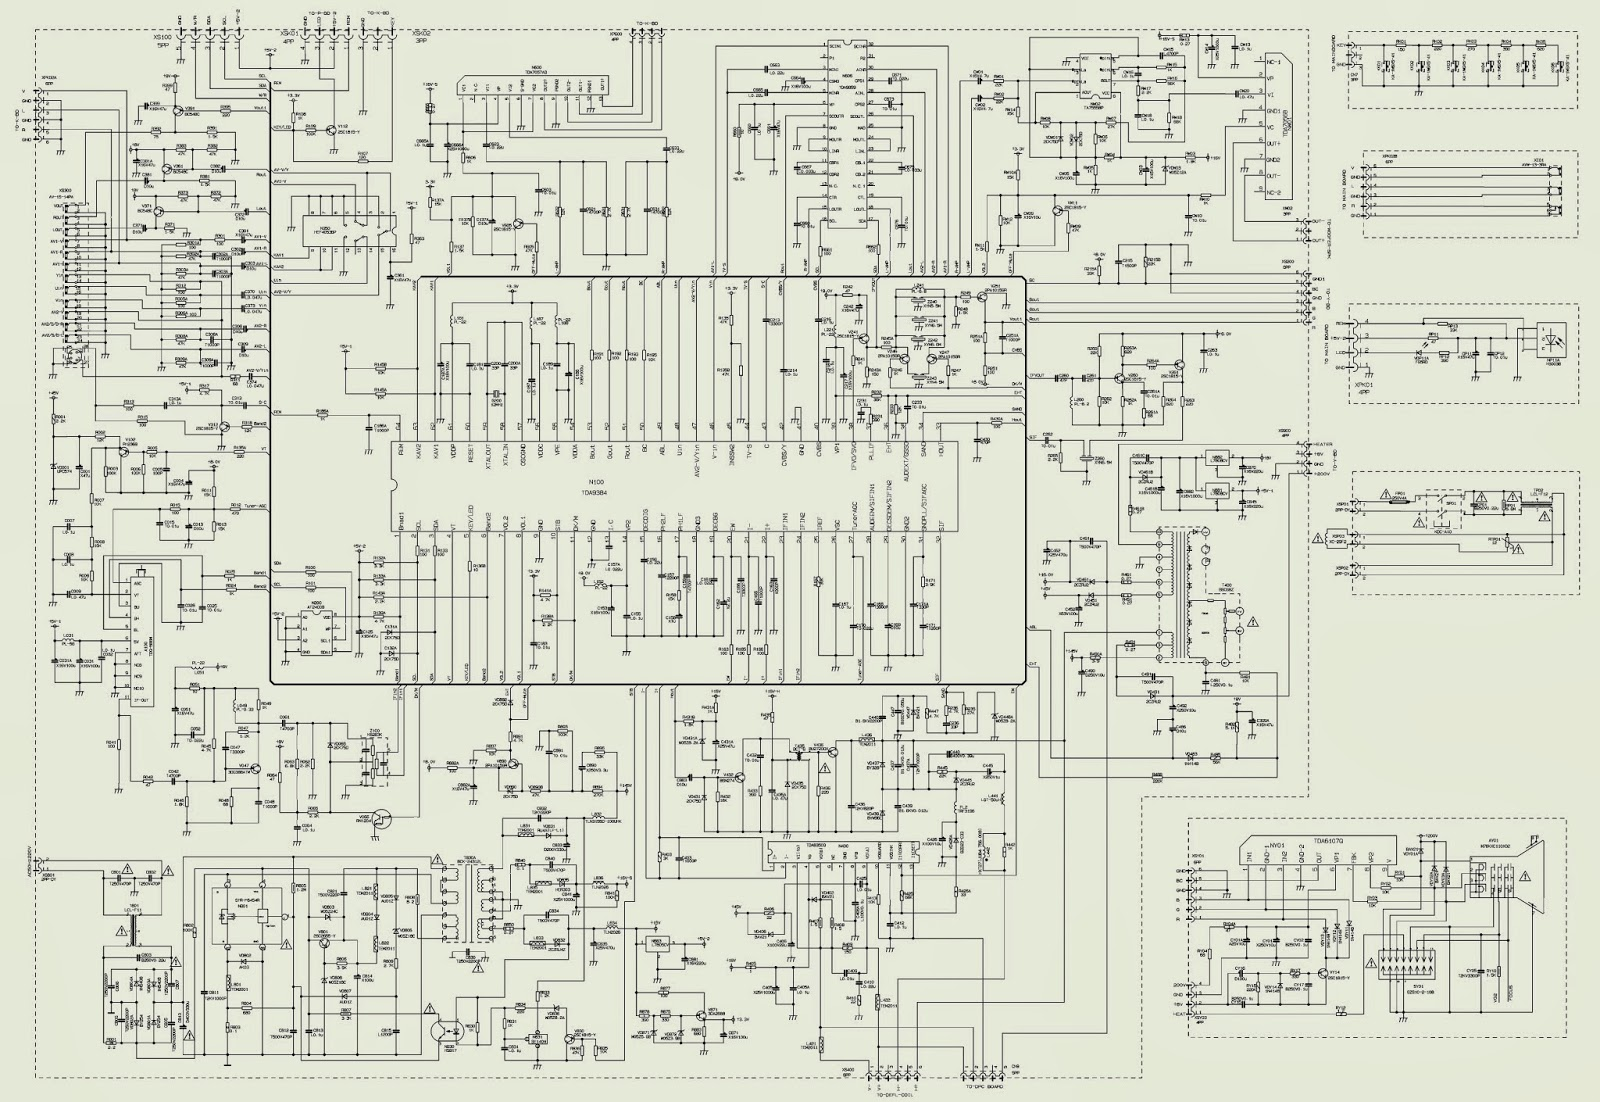 Admirable Hbd7310 Car Stereo Schematic Circuit Diagram Electro Help Wiring Wiring Cloud Hemtegremohammedshrineorg